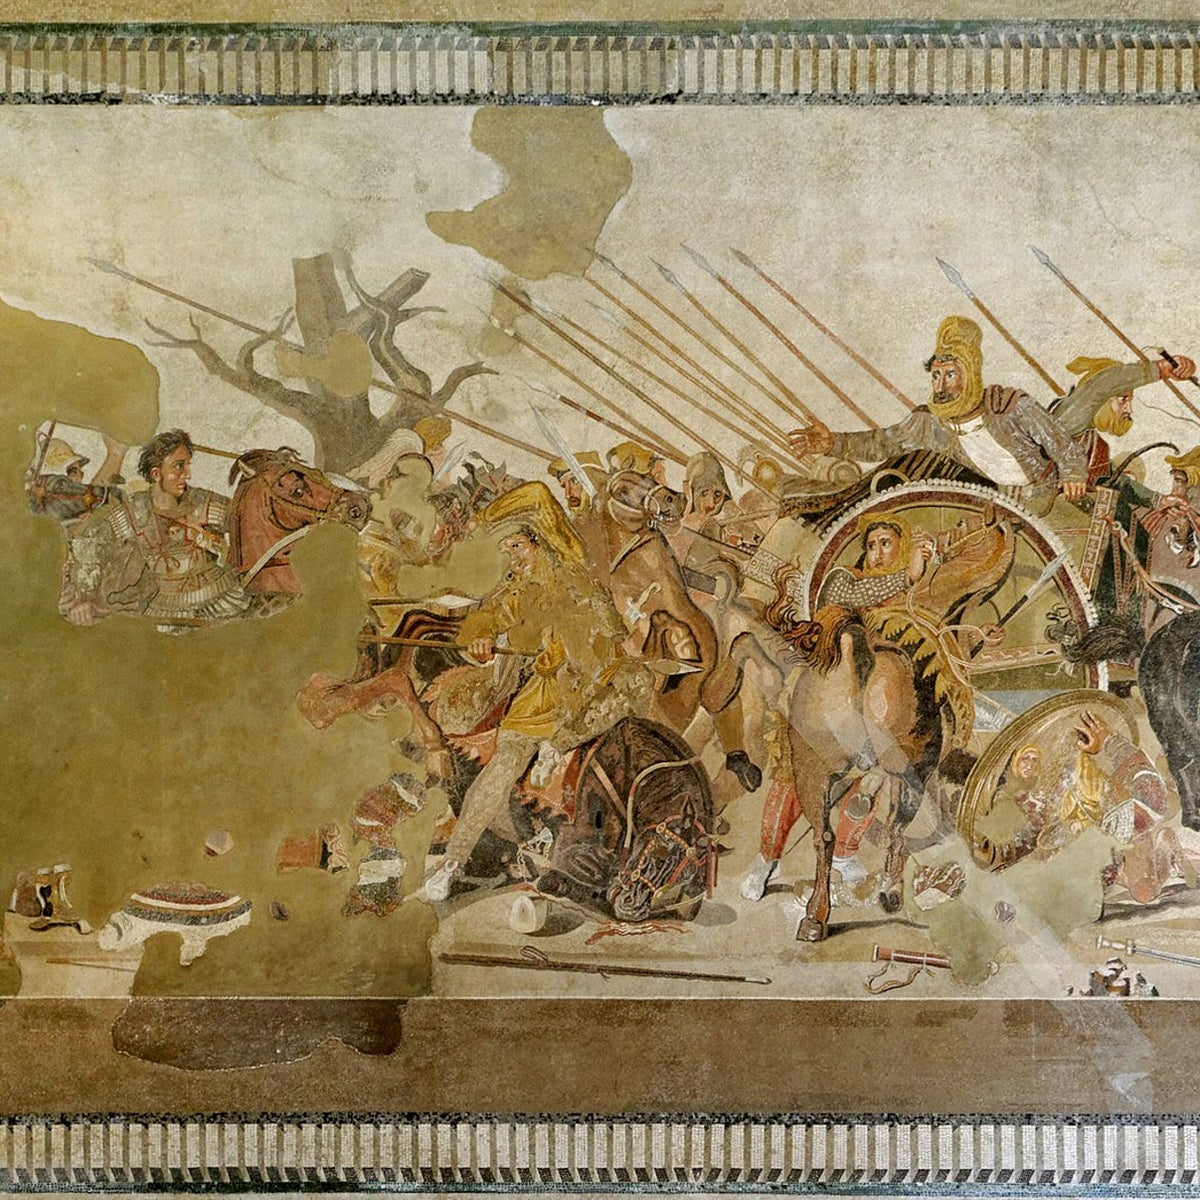 The Battle of Issus, between Alexander the Great on horseback to the left, and Darius III in the chariot to the right, represented in a Pompeii mosaic dated 1st century BC